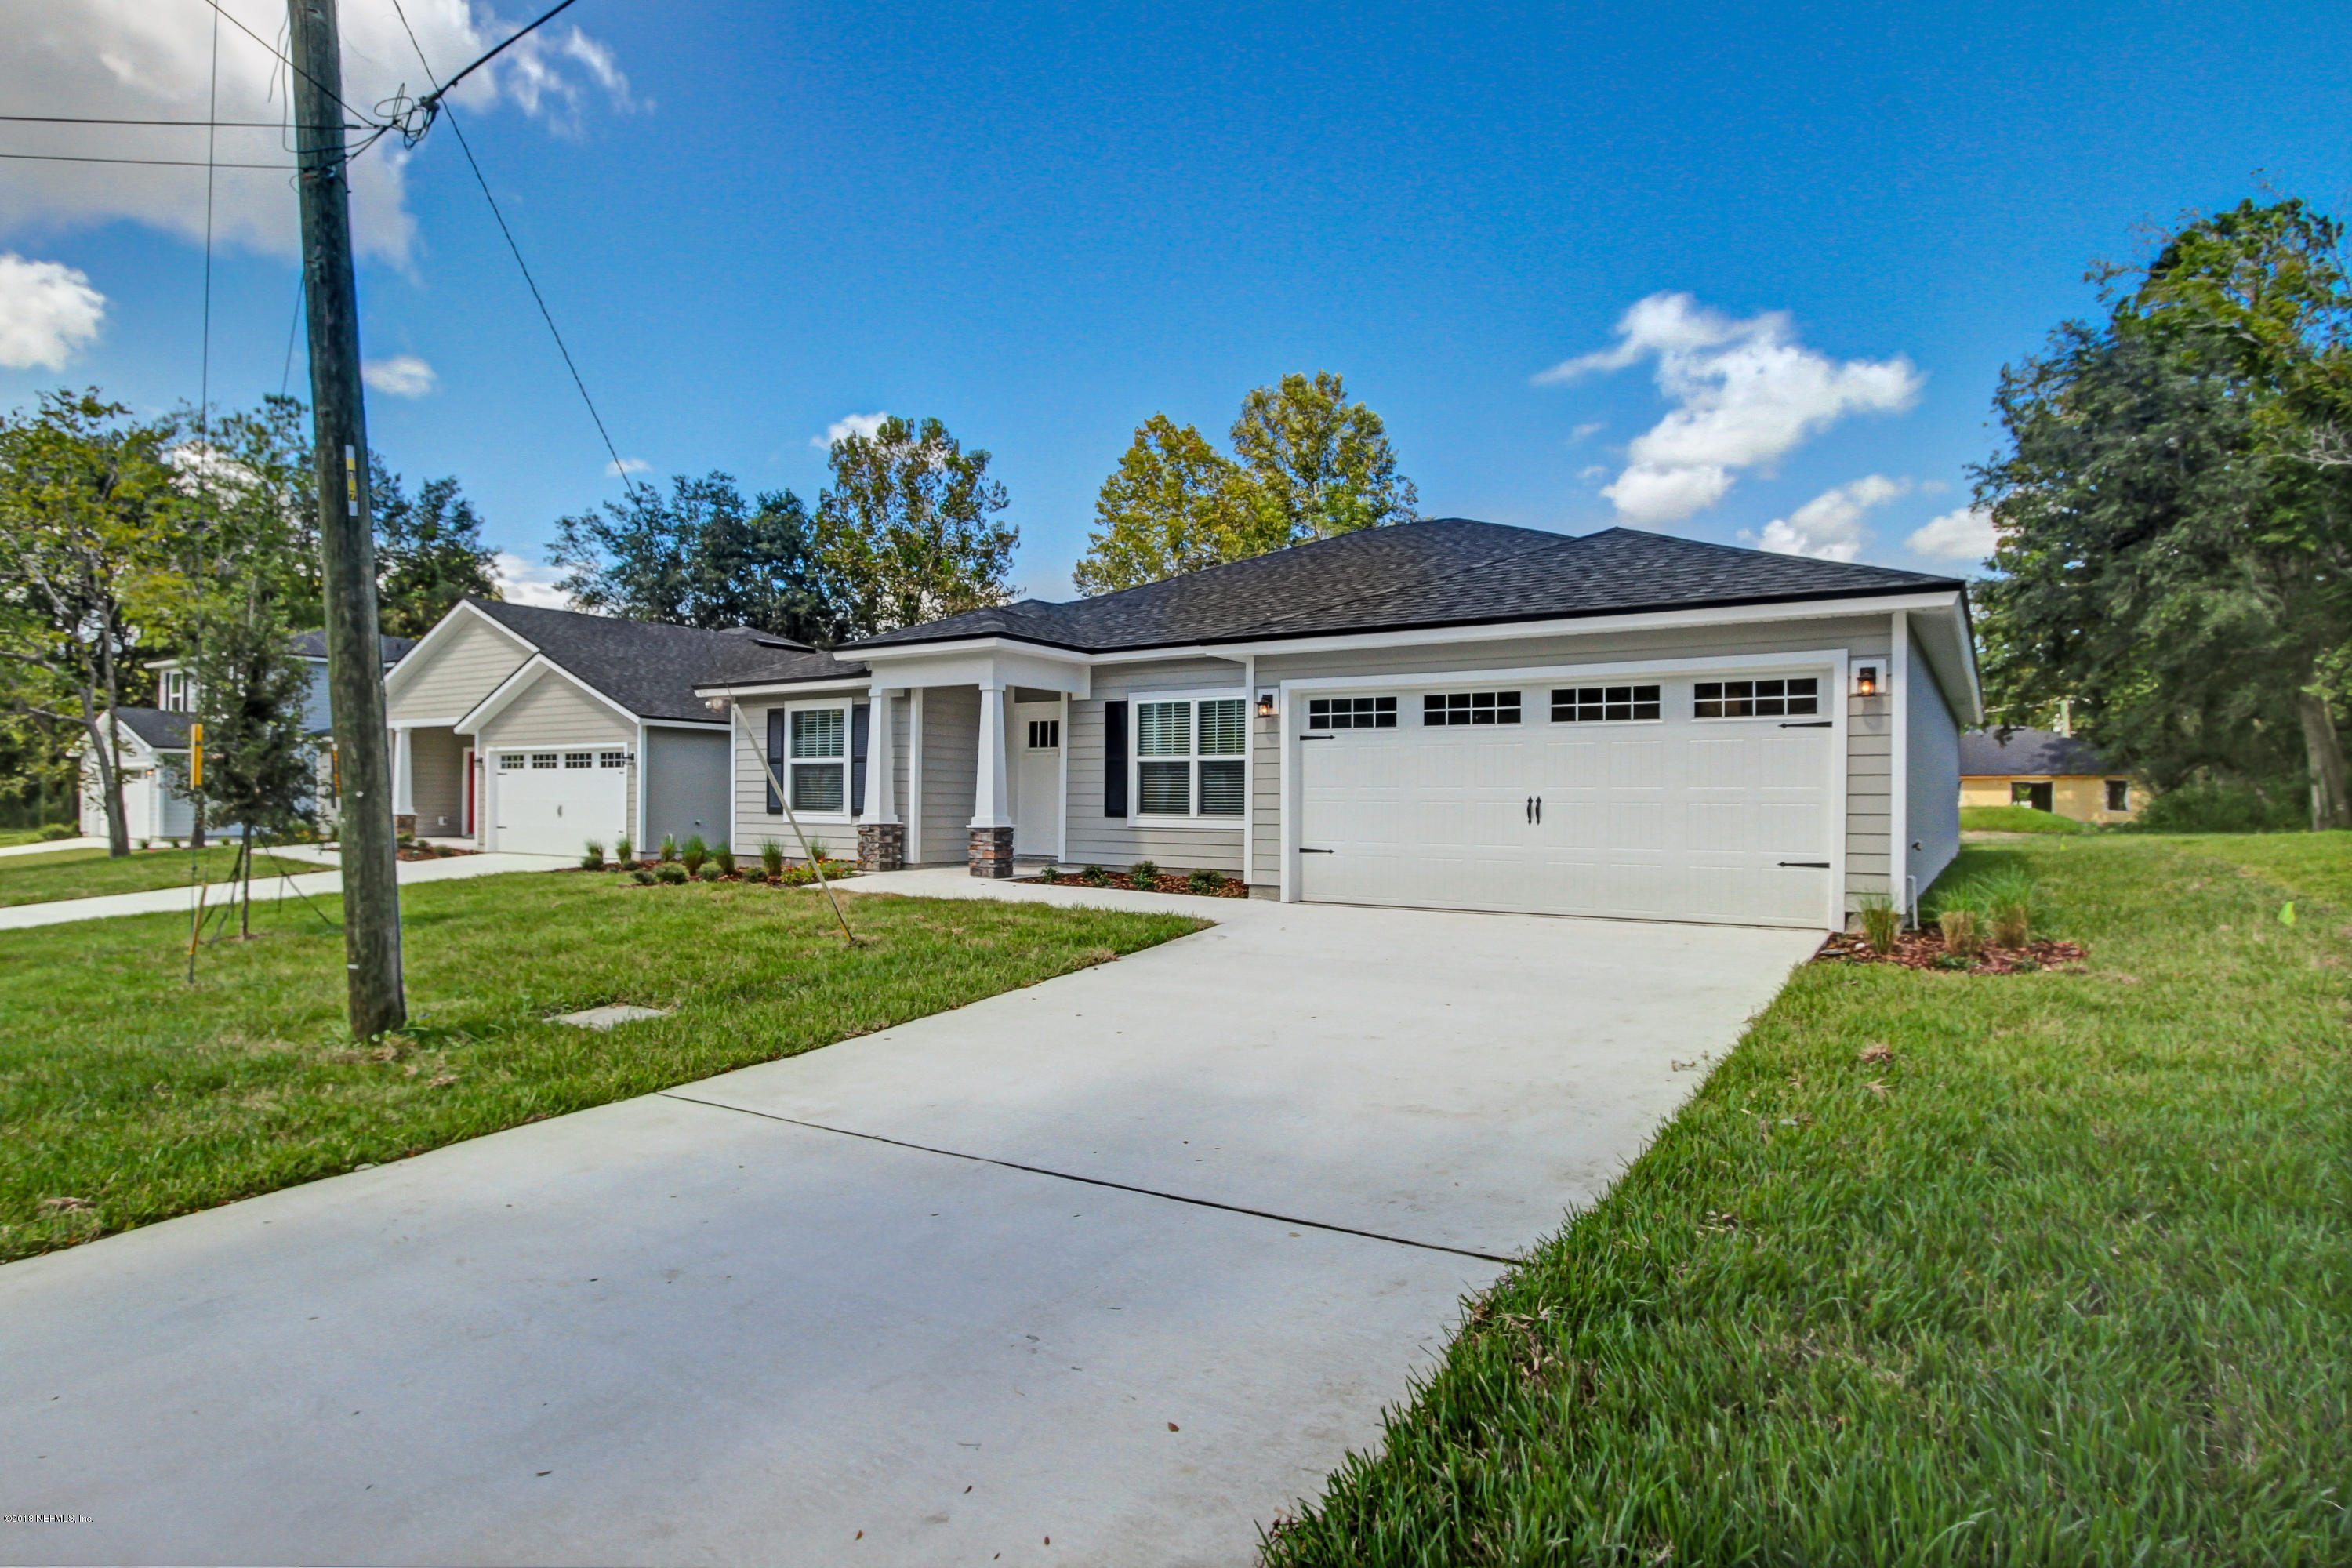 5127 DAMASCUS, JACKSONVILLE, FLORIDA 32207, 4 Bedrooms Bedrooms, ,2 BathroomsBathrooms,Residential - single family,For sale,DAMASCUS,959385